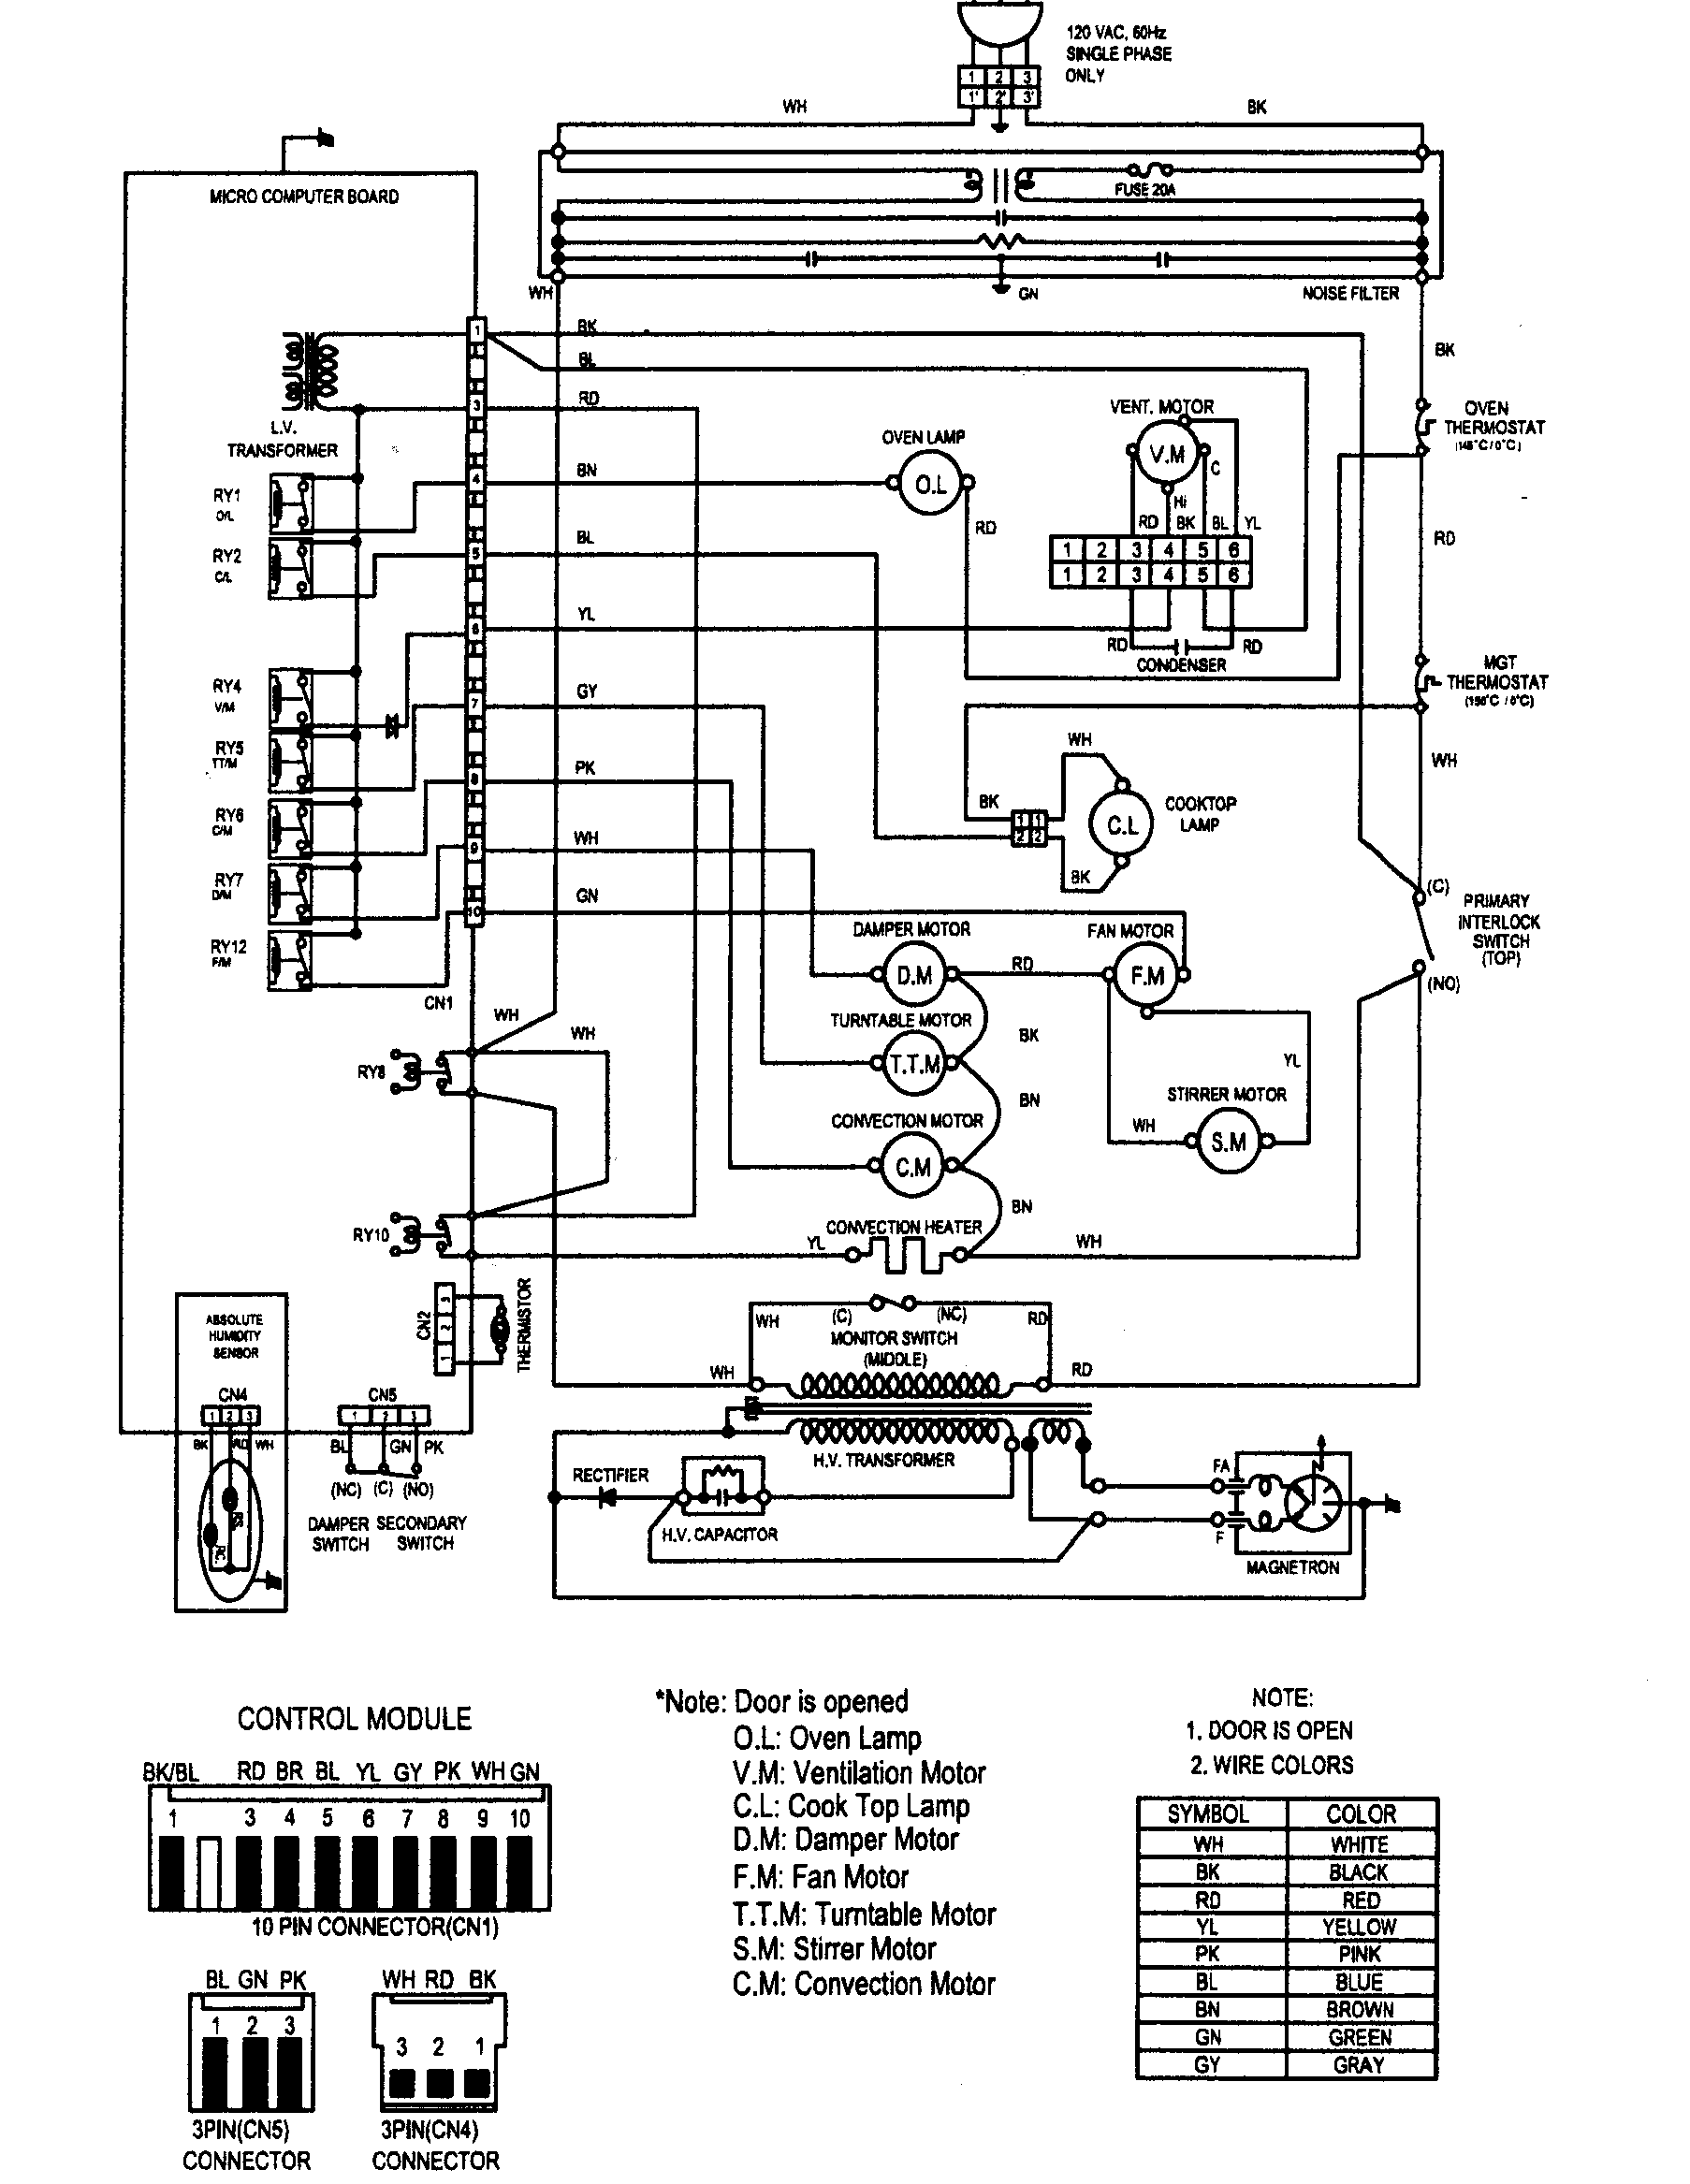 4 Wire Computer Fan Volvo Wiring Diagrams For Radiator Fan